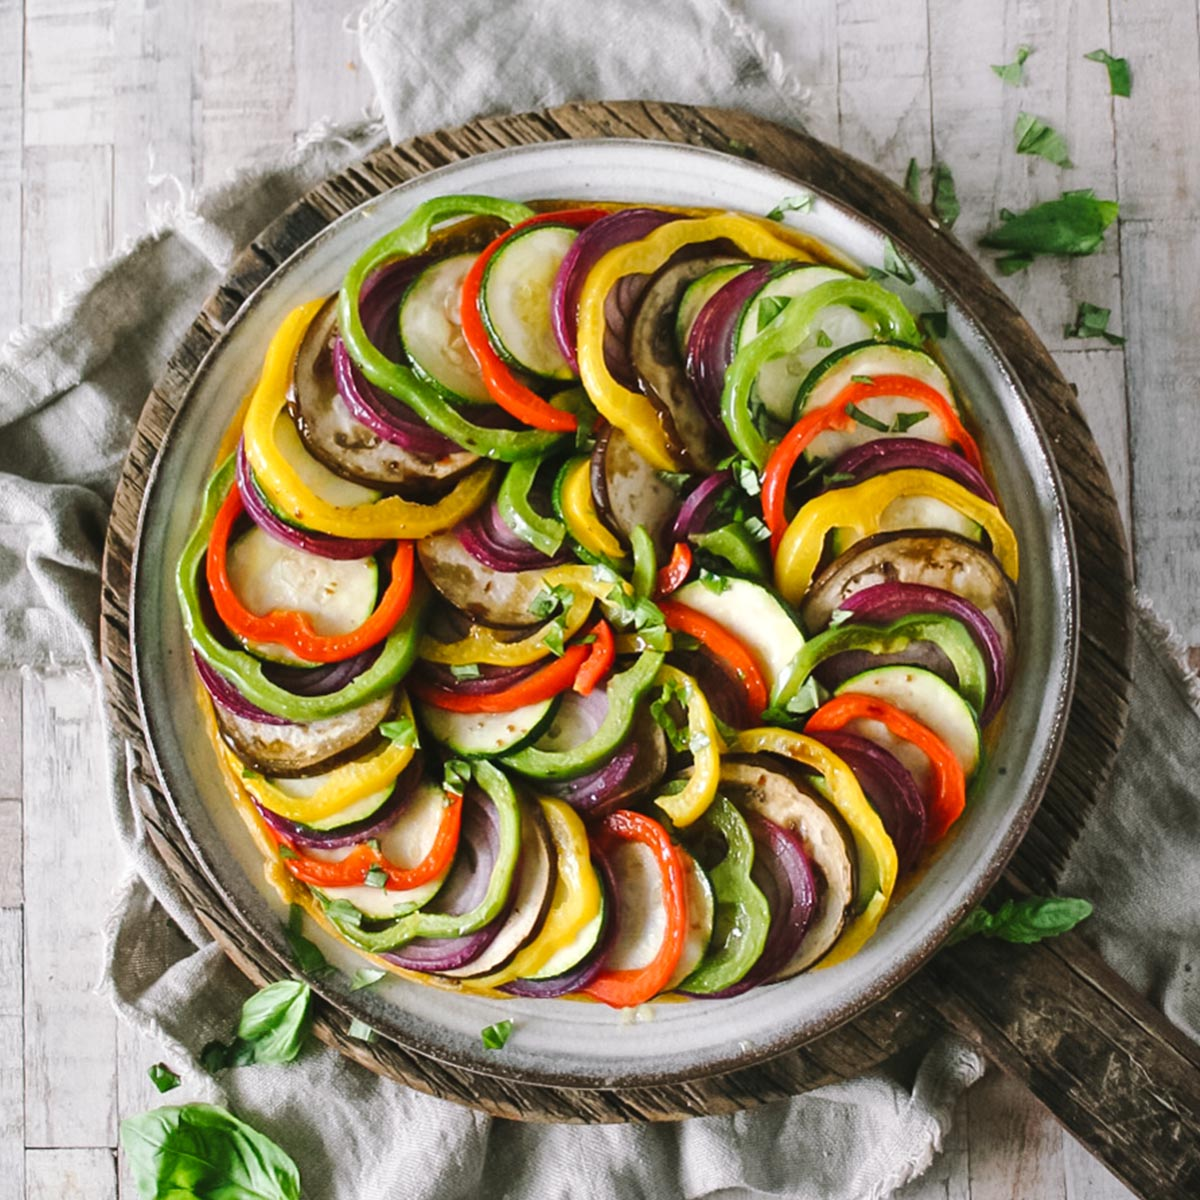 Layered Pesto Ratatouille Tart